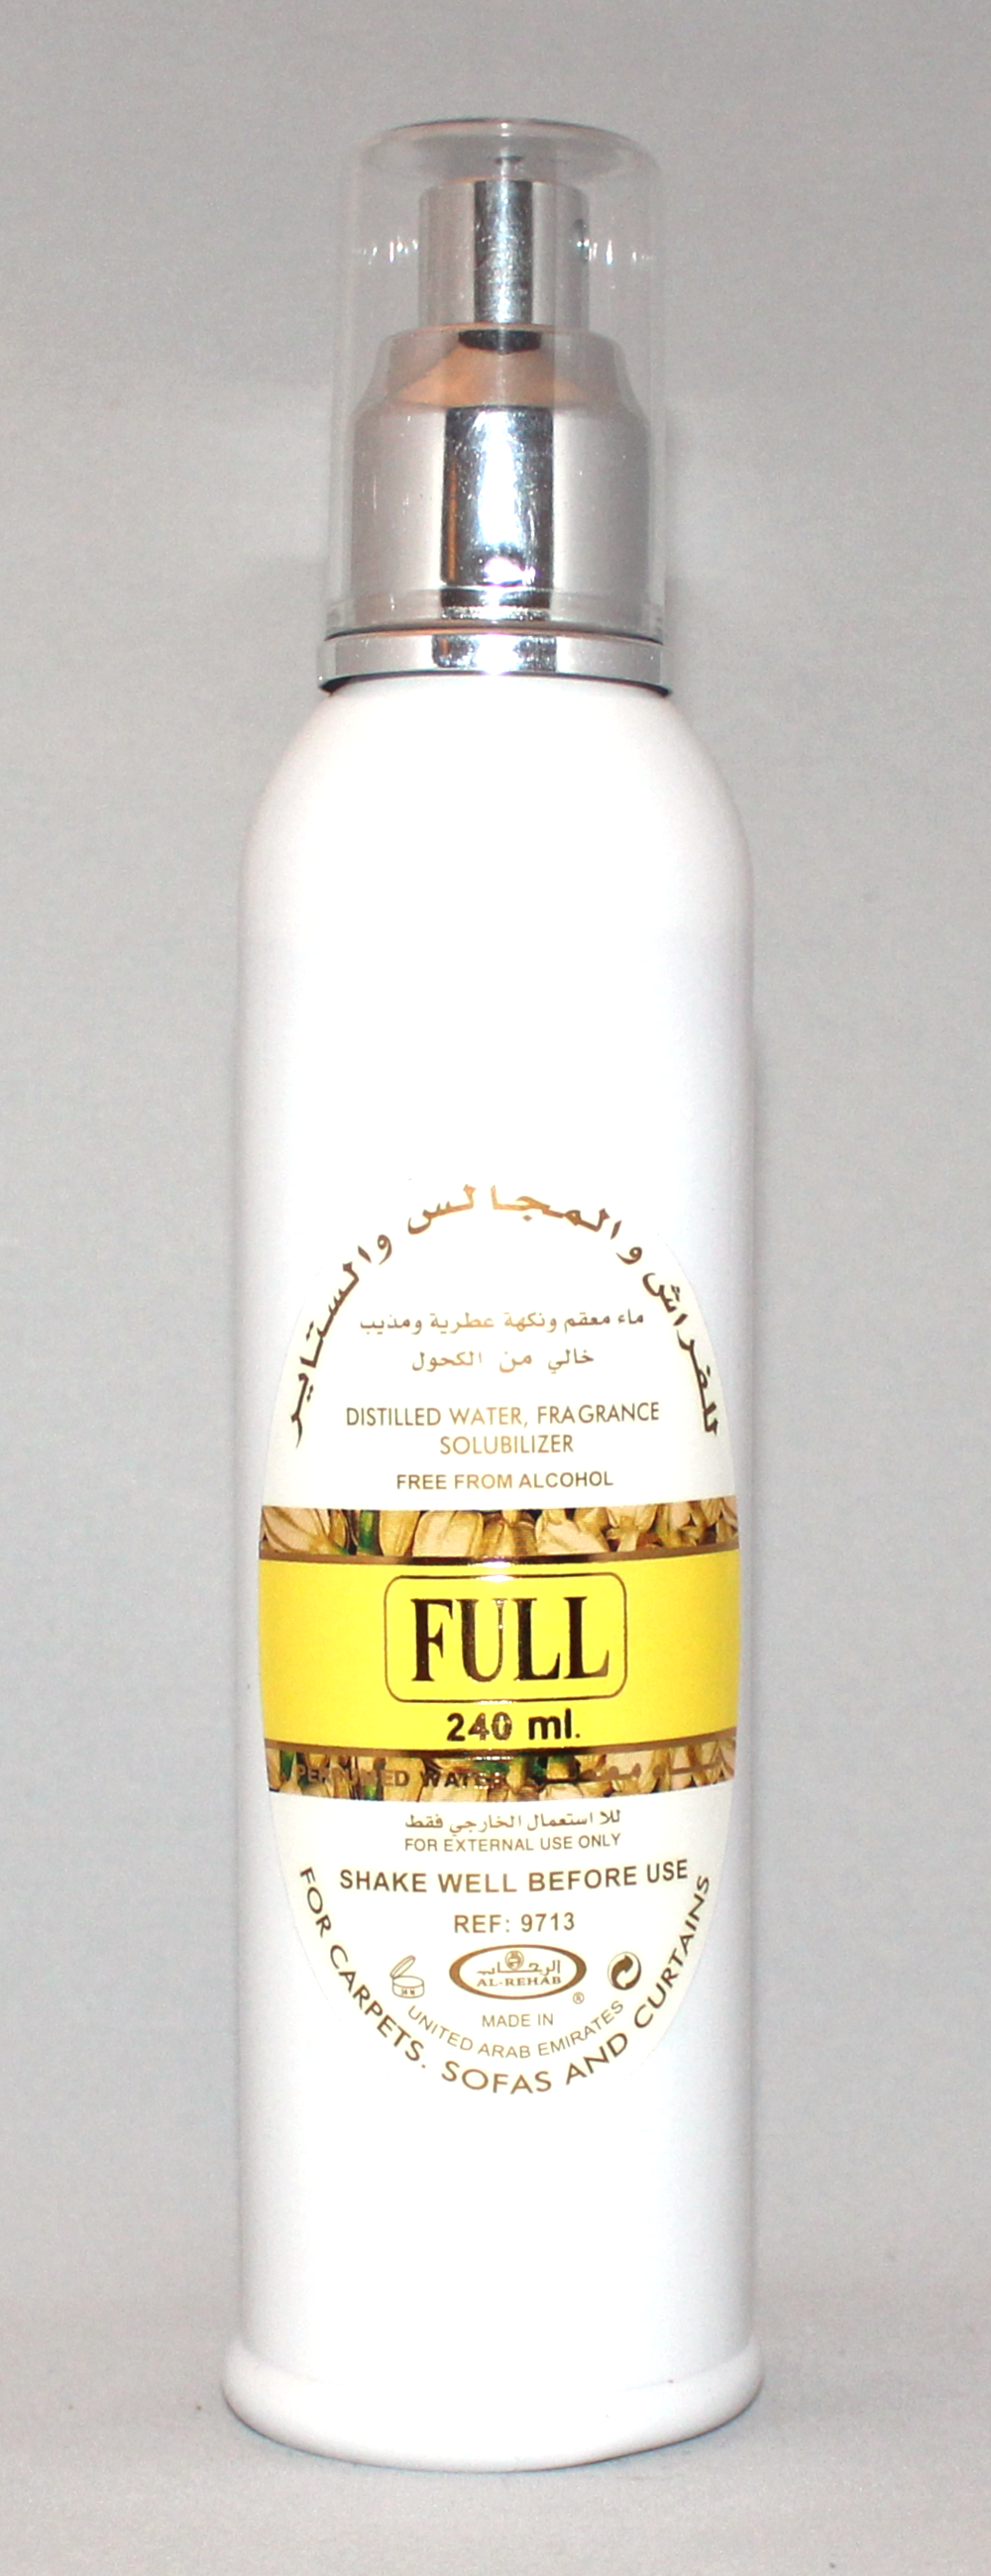 Full - Room Freshener by Al-Rehab (240 ml)